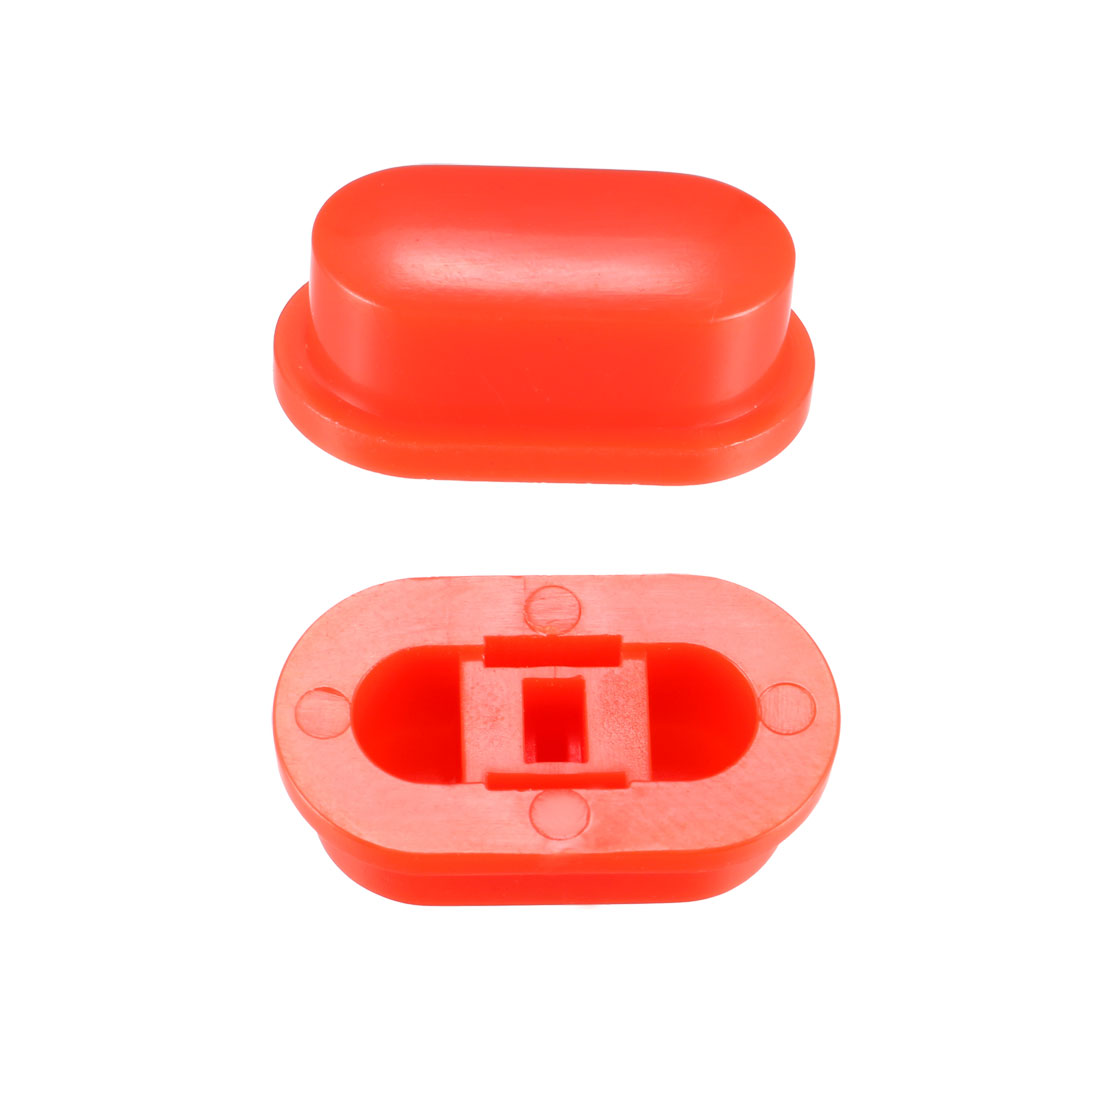 25Pcs Plastic 18x10x7mm Latching Pushbutton Tactile Switch Caps Cover Red